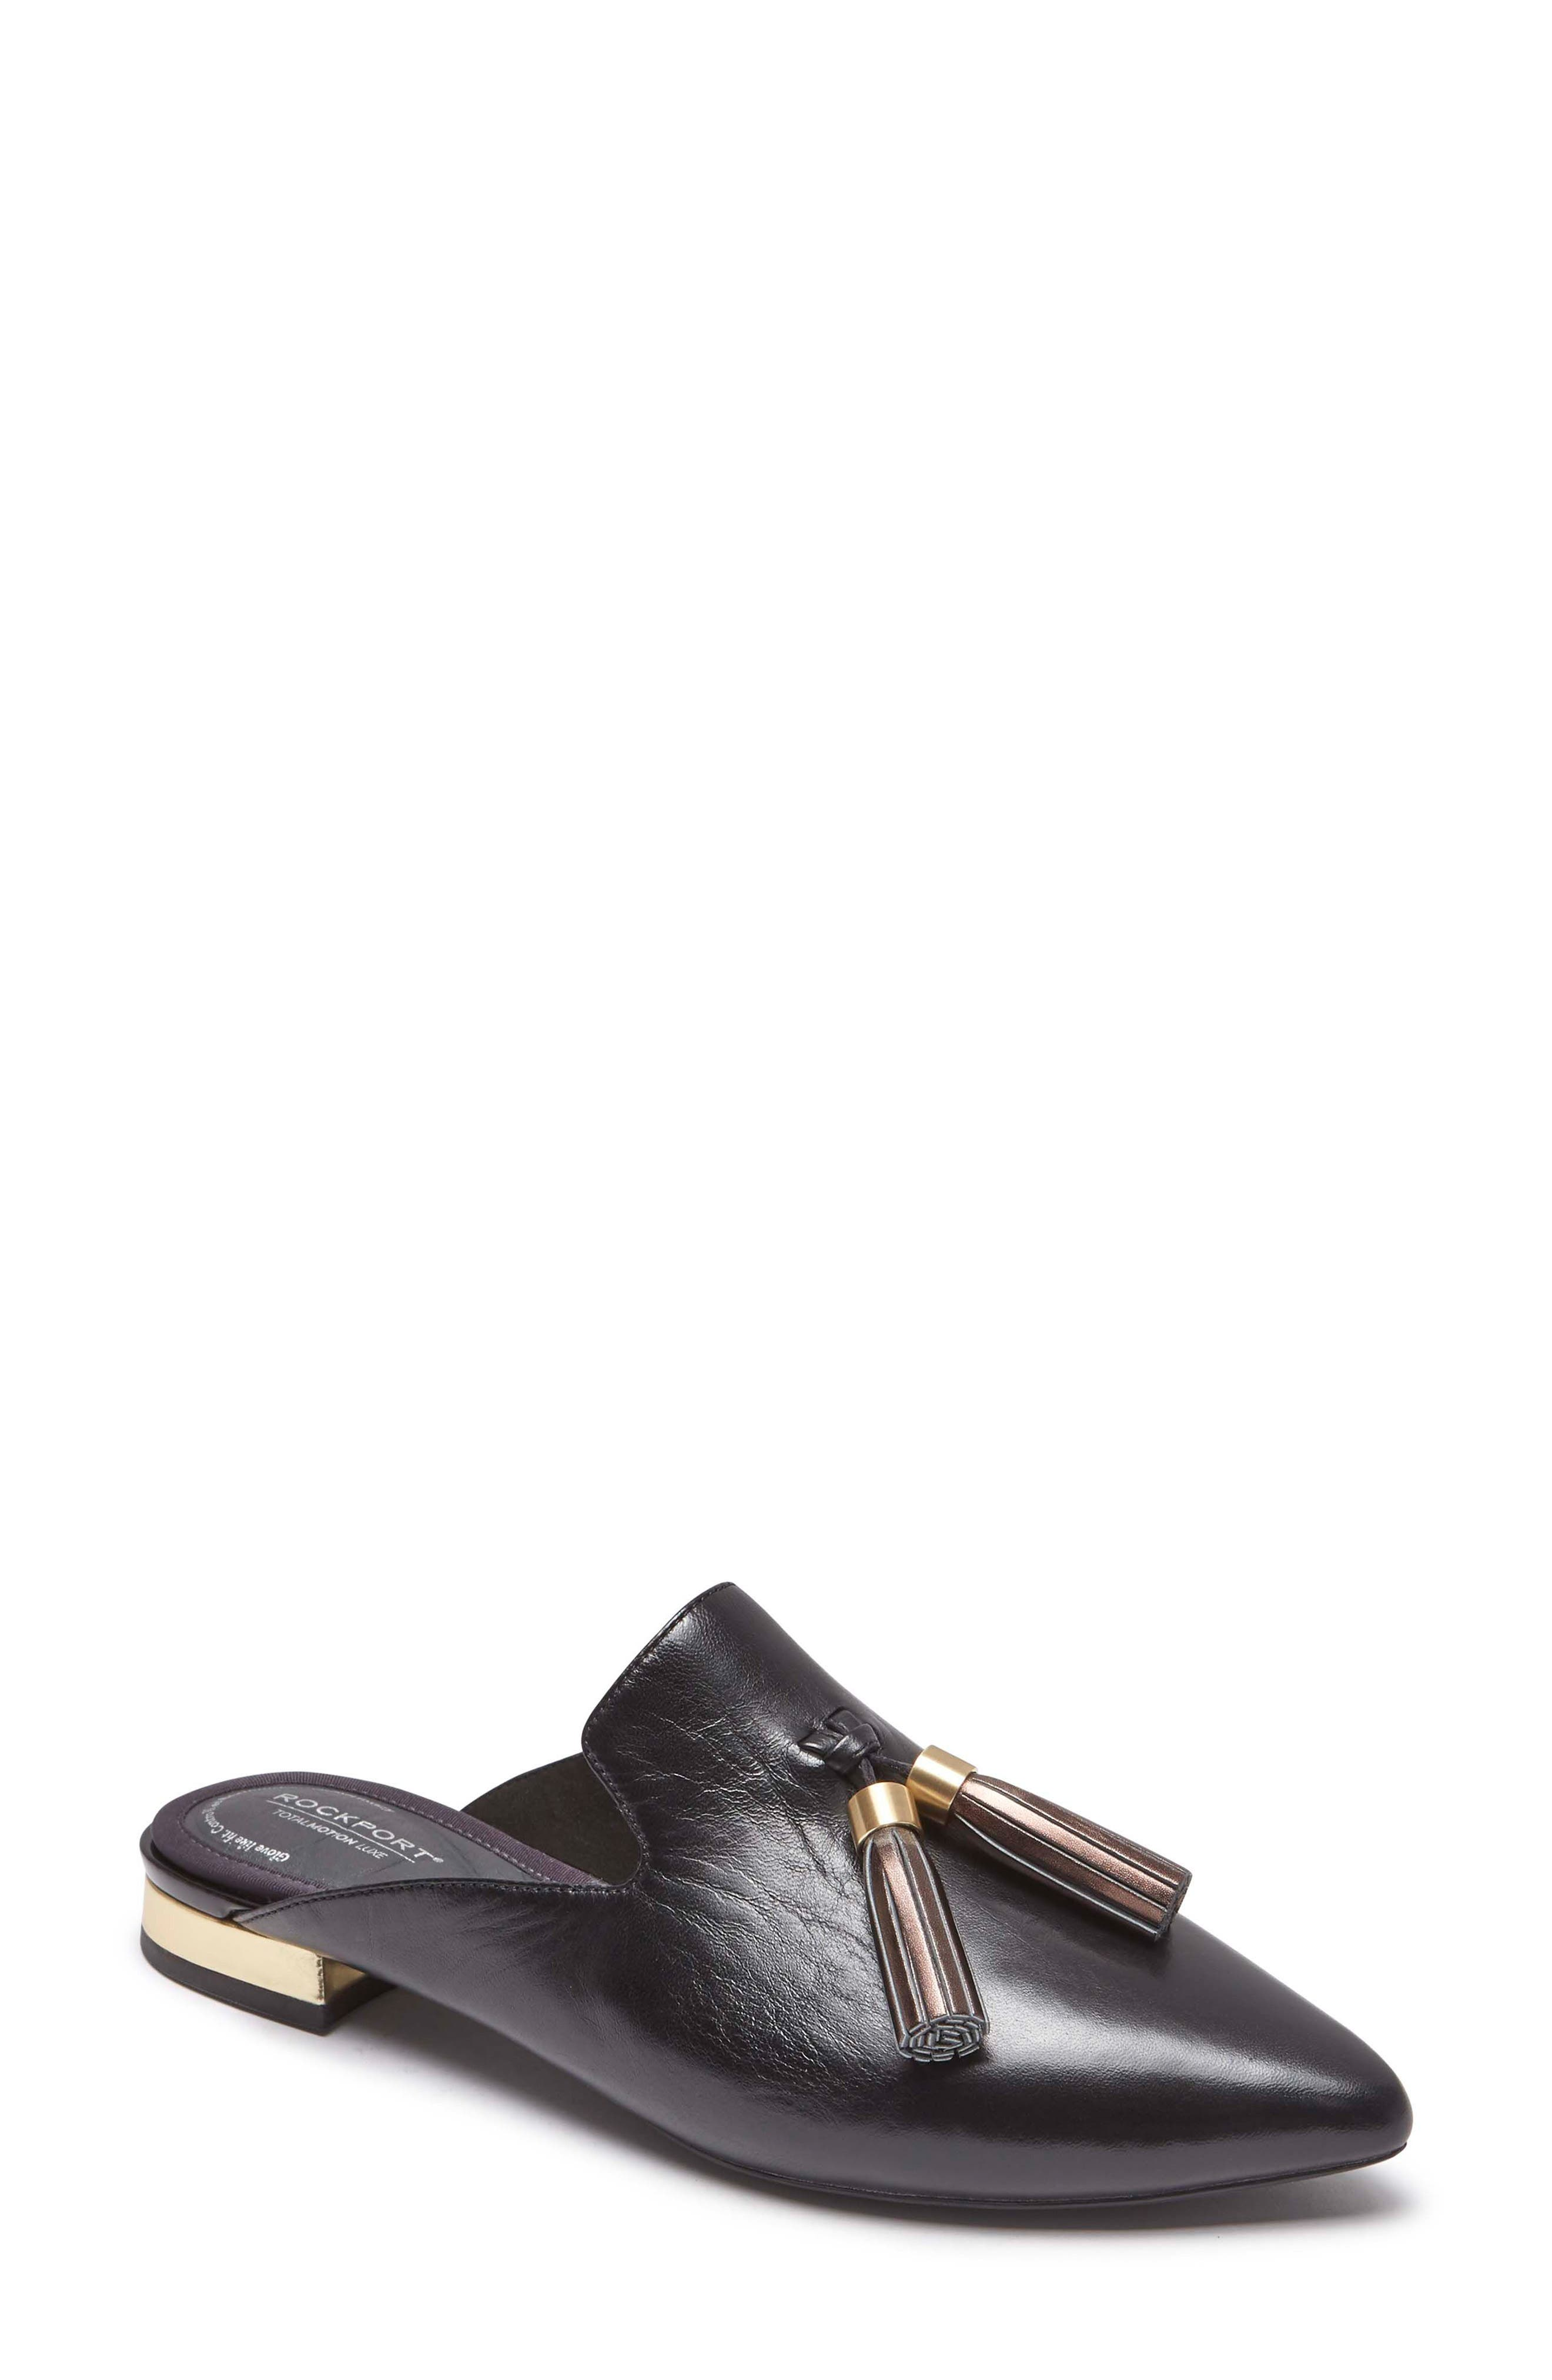 Total Motion Zuly Tassel Mule, Main, color, BLACK LEATHER